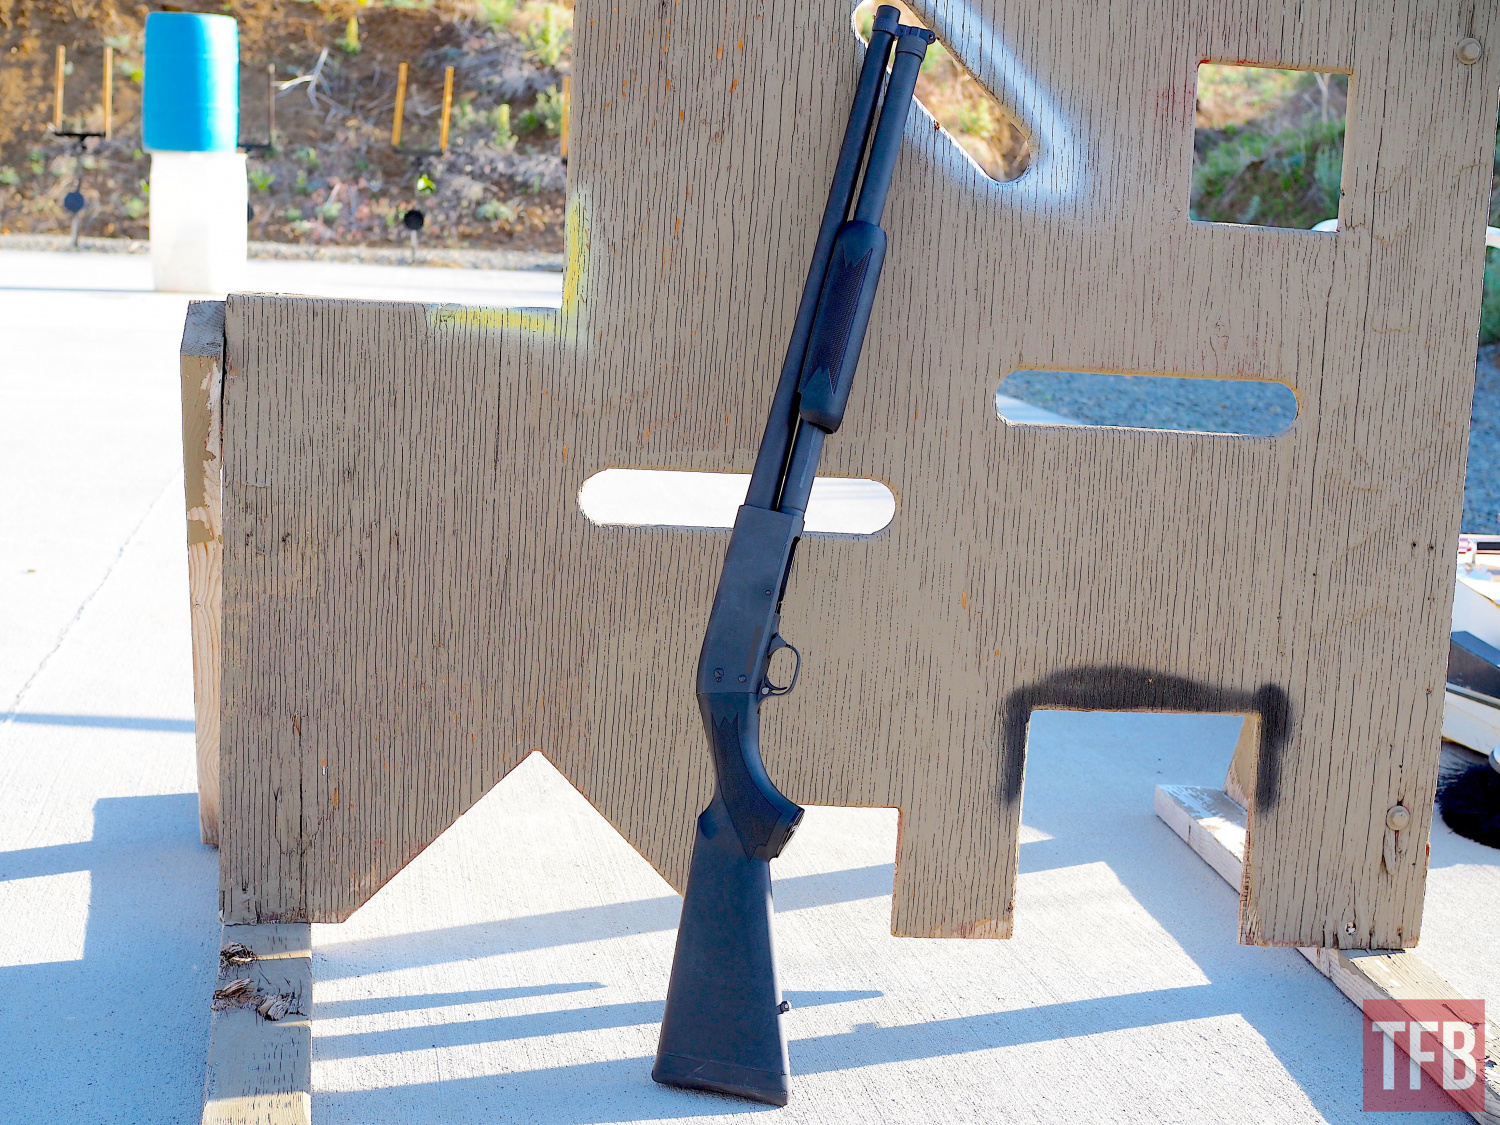 The Model 37 can and has served very well in the defensive shotgun role